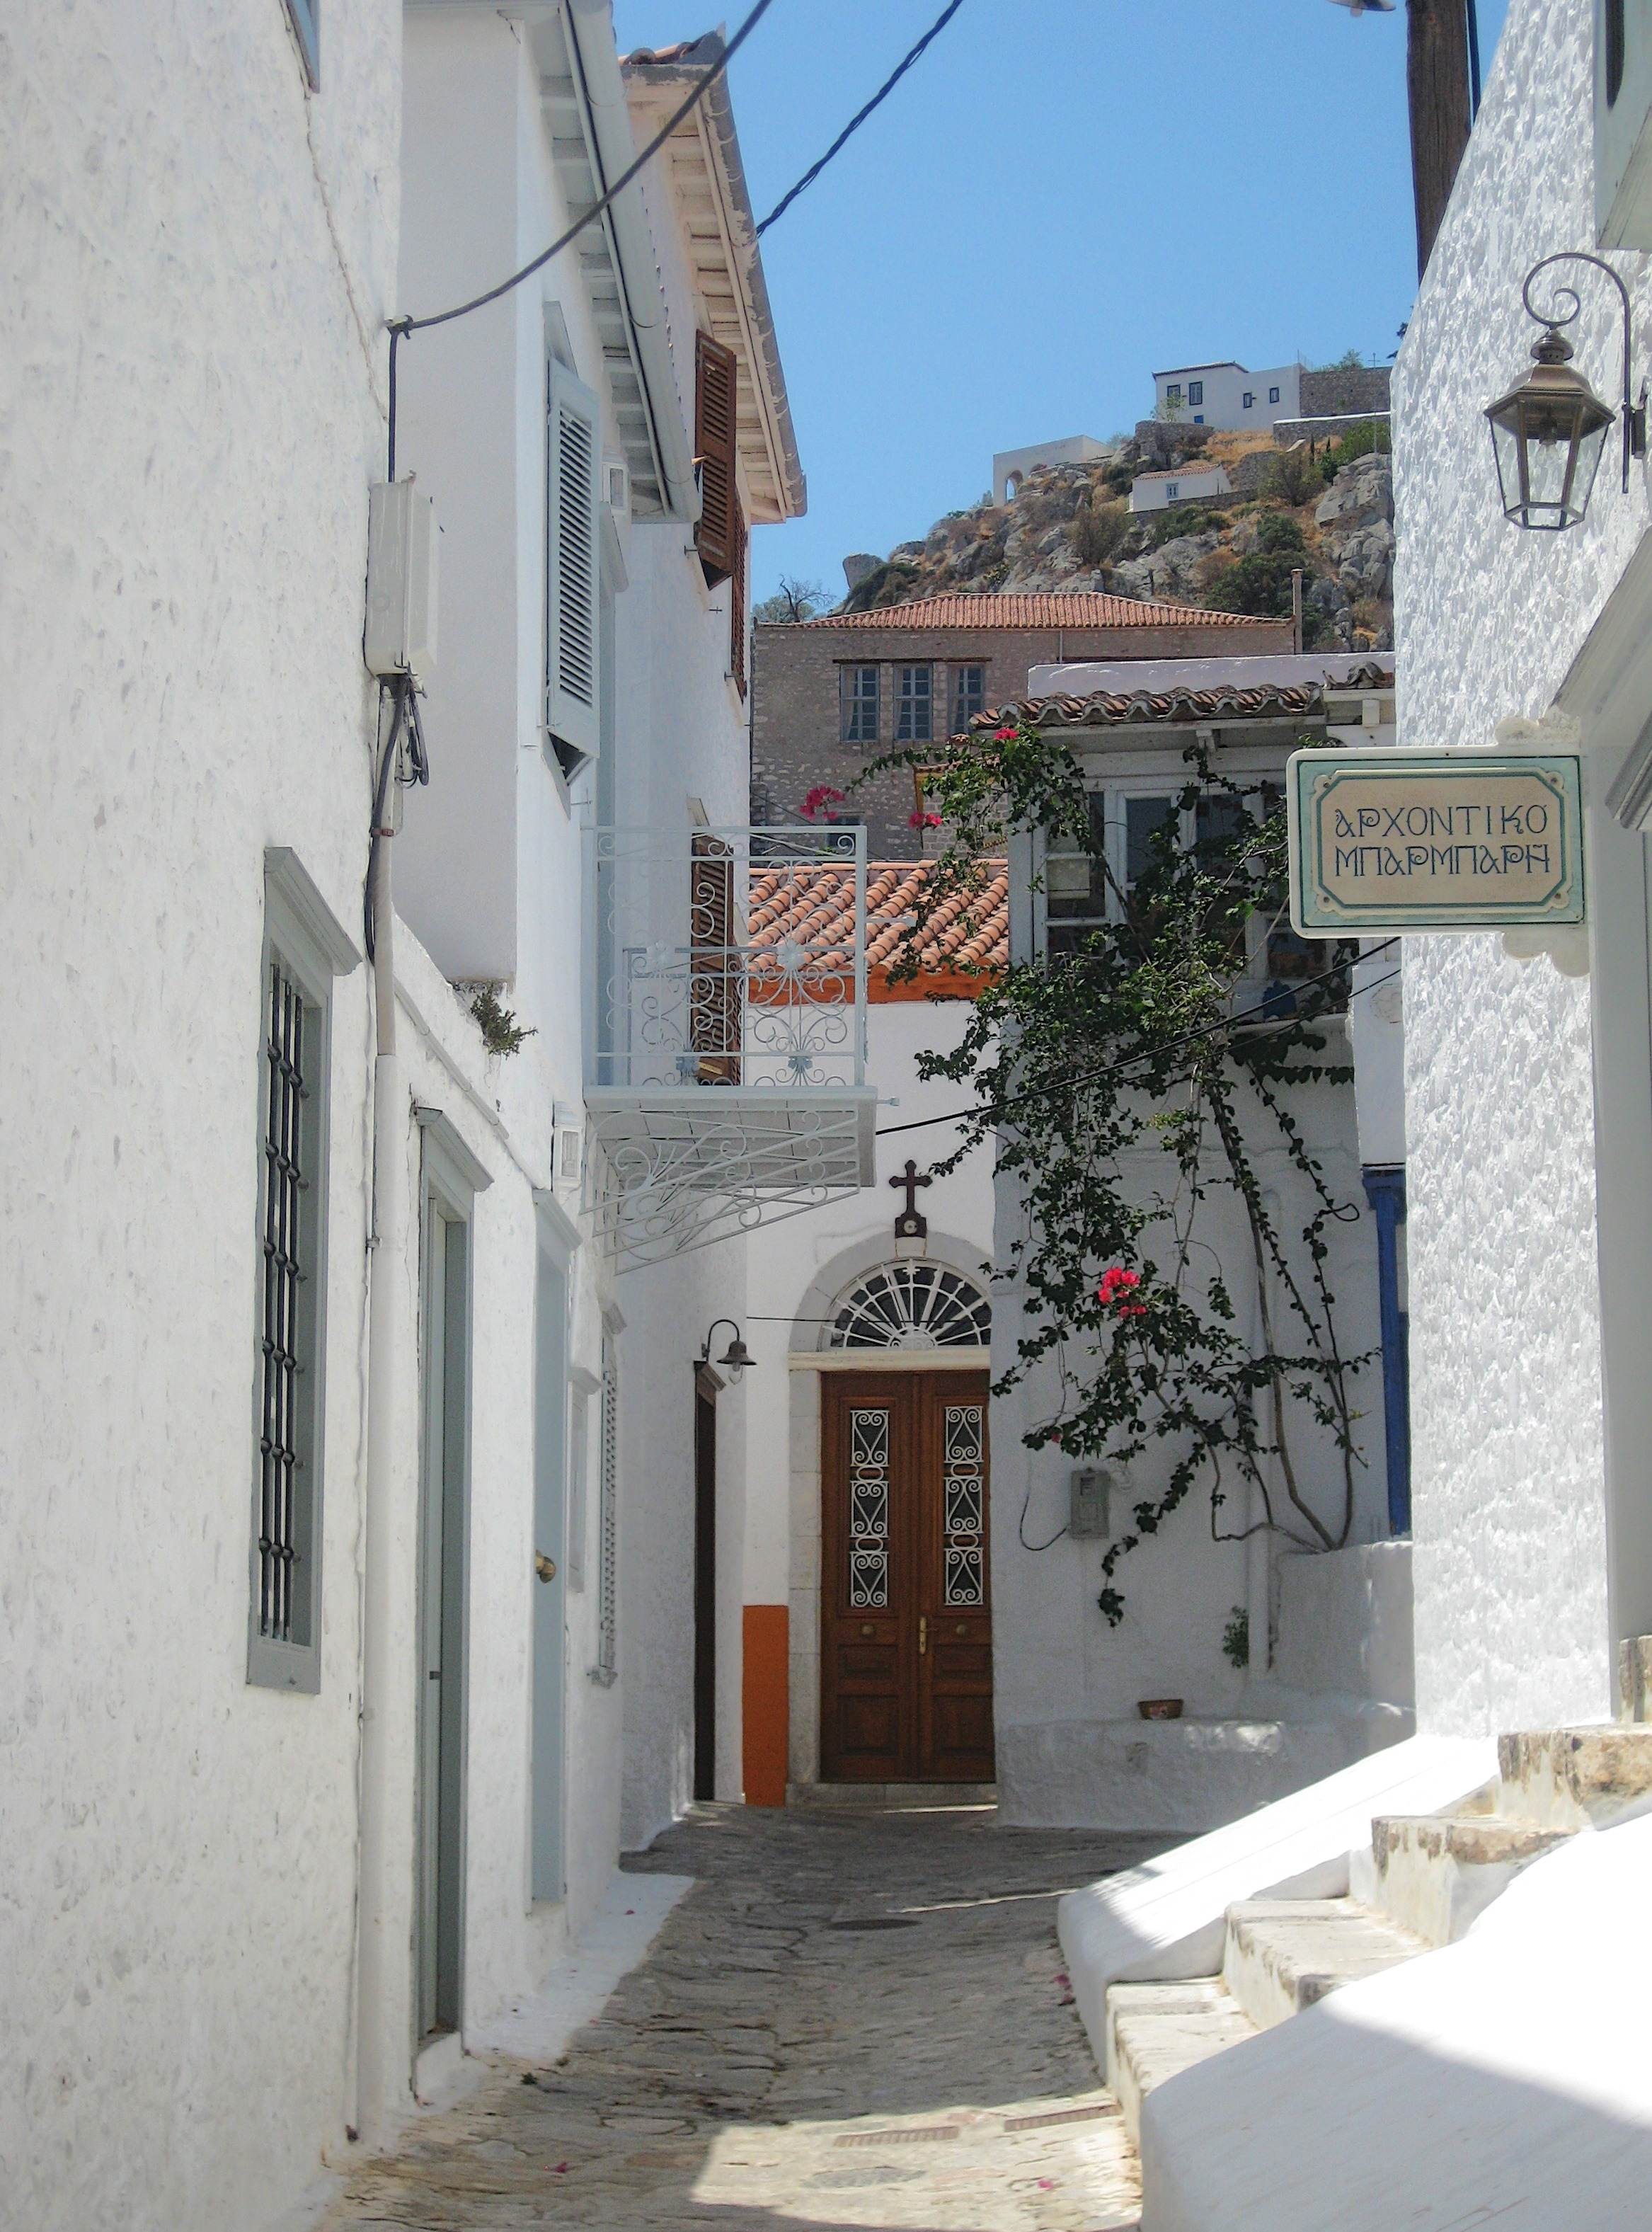 A street in town on Hydra, Greece